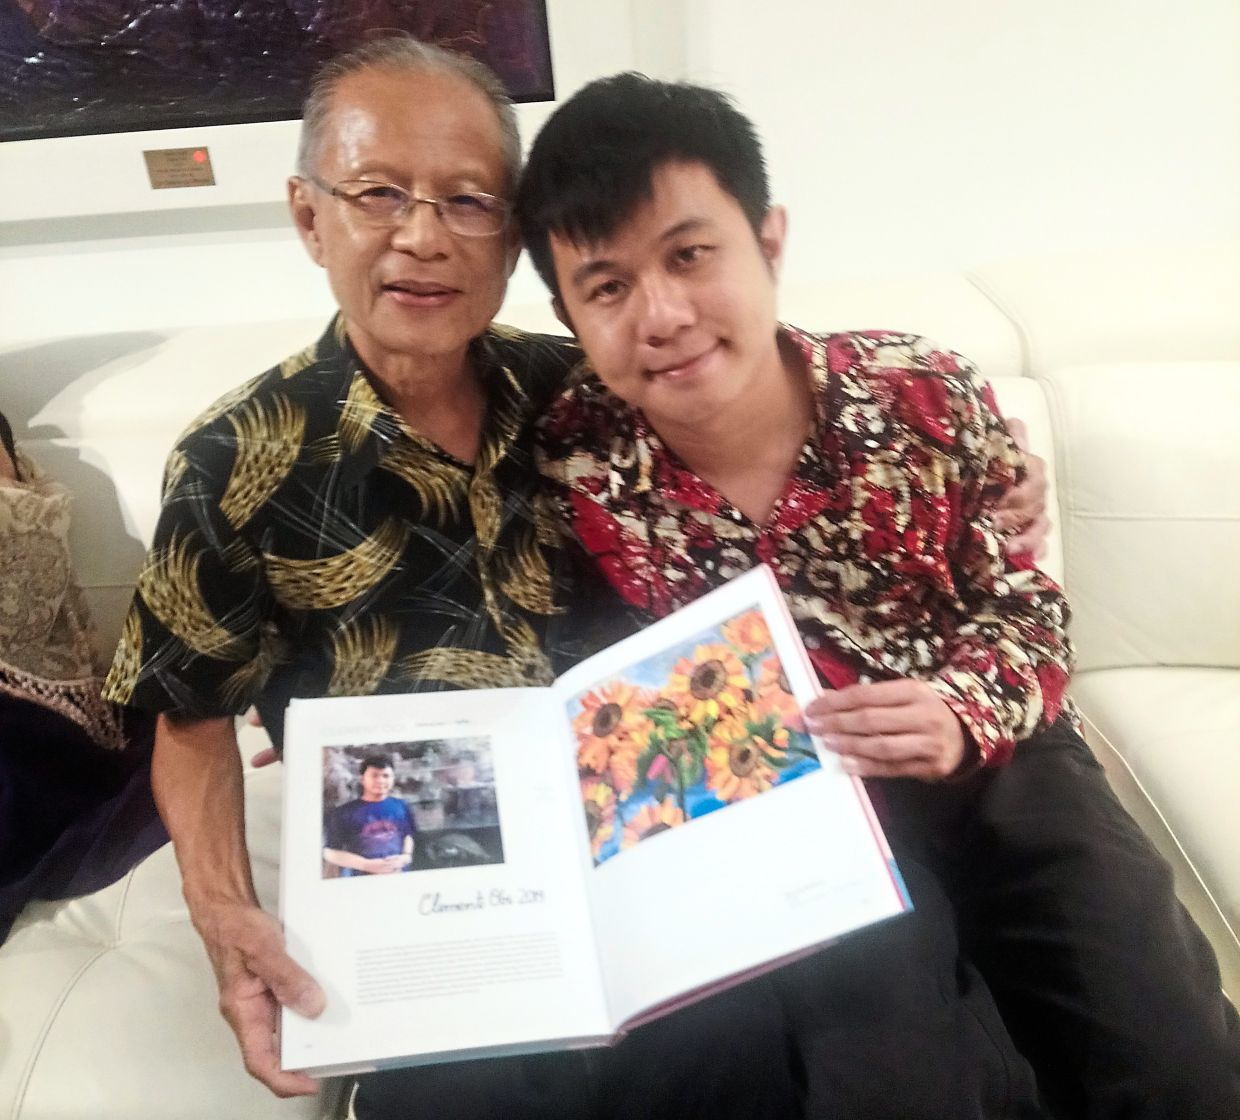 Clement (right) and his father Ooi Bee Lam. Photo: Ooi Bee Lam